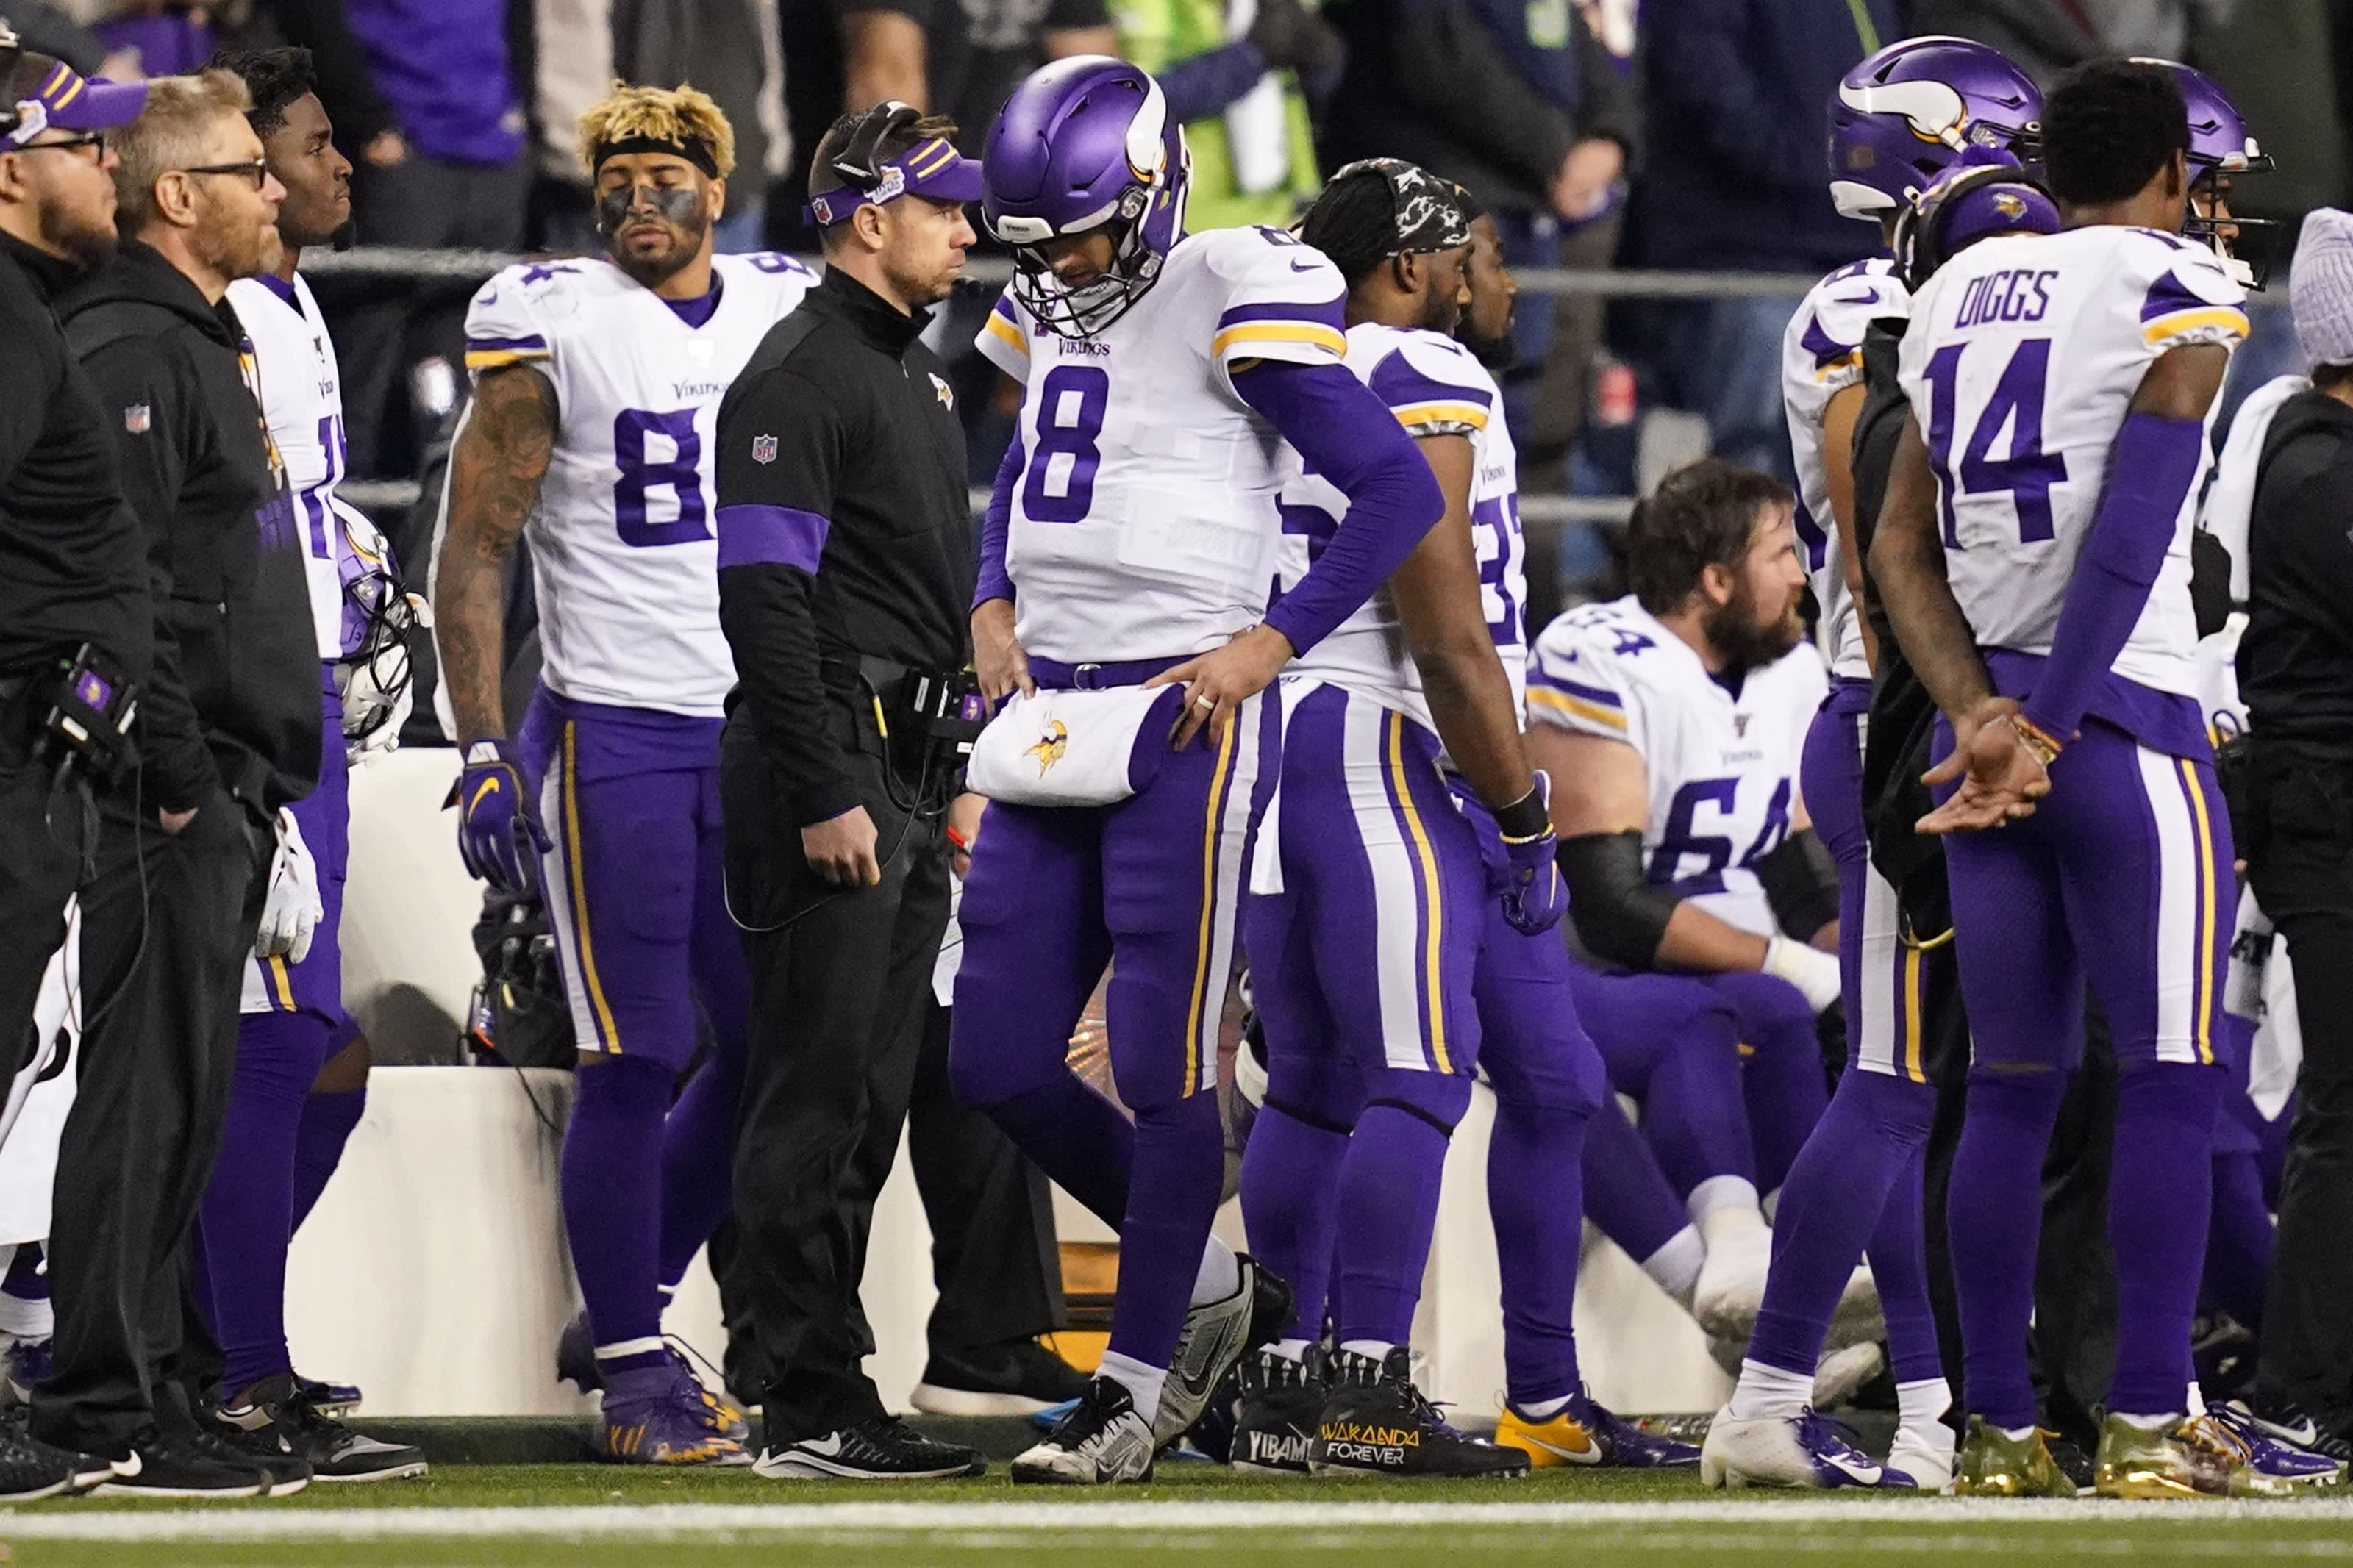 SEATTLE, WA - DECEMBER 2: Vikings quarterback Kirk Cousins (8) paced the sidelines after a turnover on downs in the fourth quarter of an NFL football game in Seattle, Washington. (Photo by Anthony Souffle/Star Tribune via Getty Images)